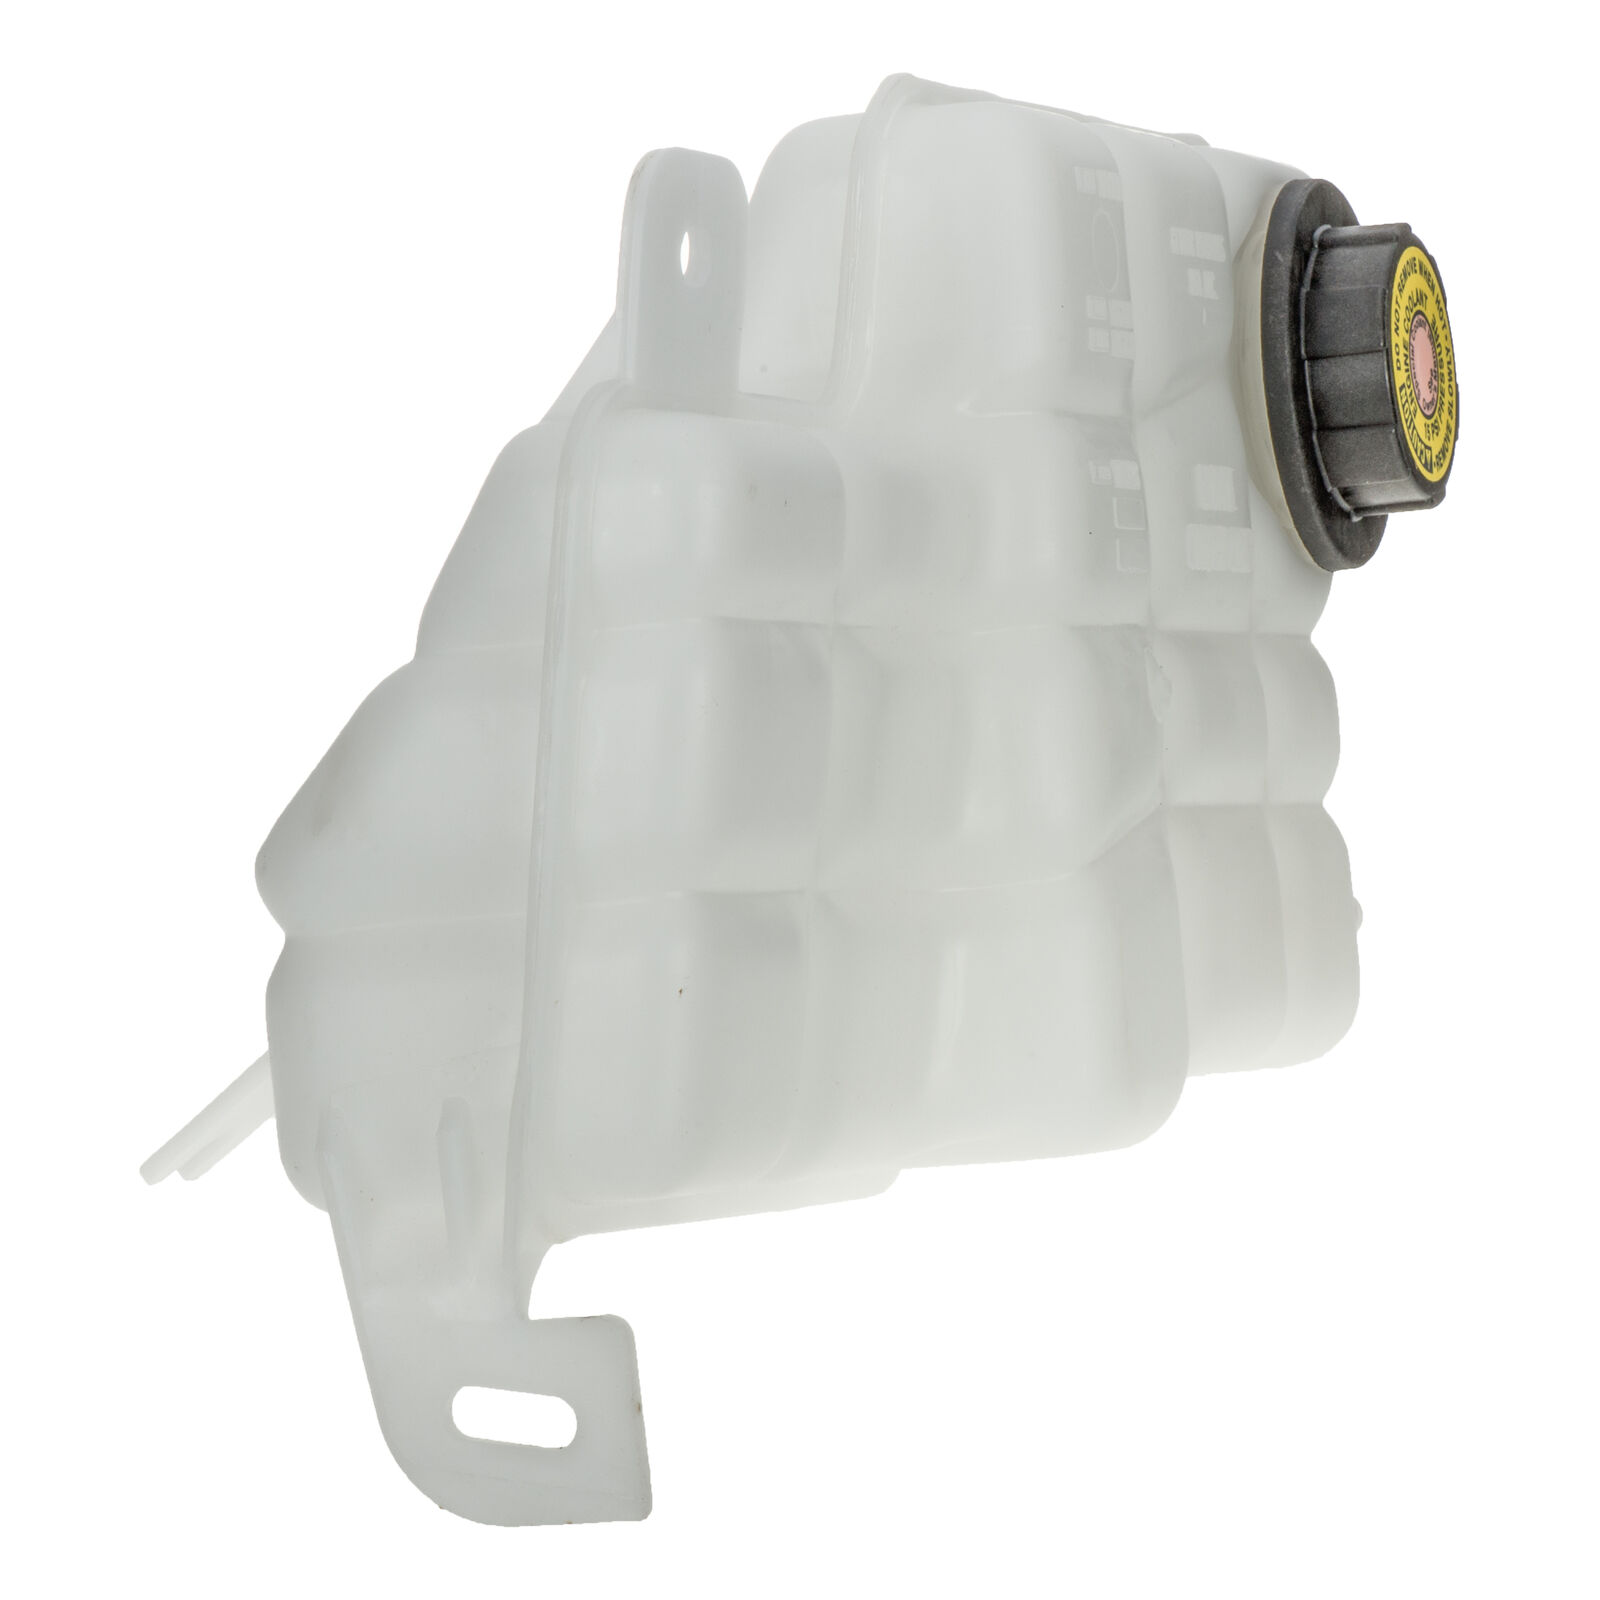 Oem New Engine Coolant Recovery Reservoir Tank 94 96 Caprice Saab 1 Of 5only 2 Available